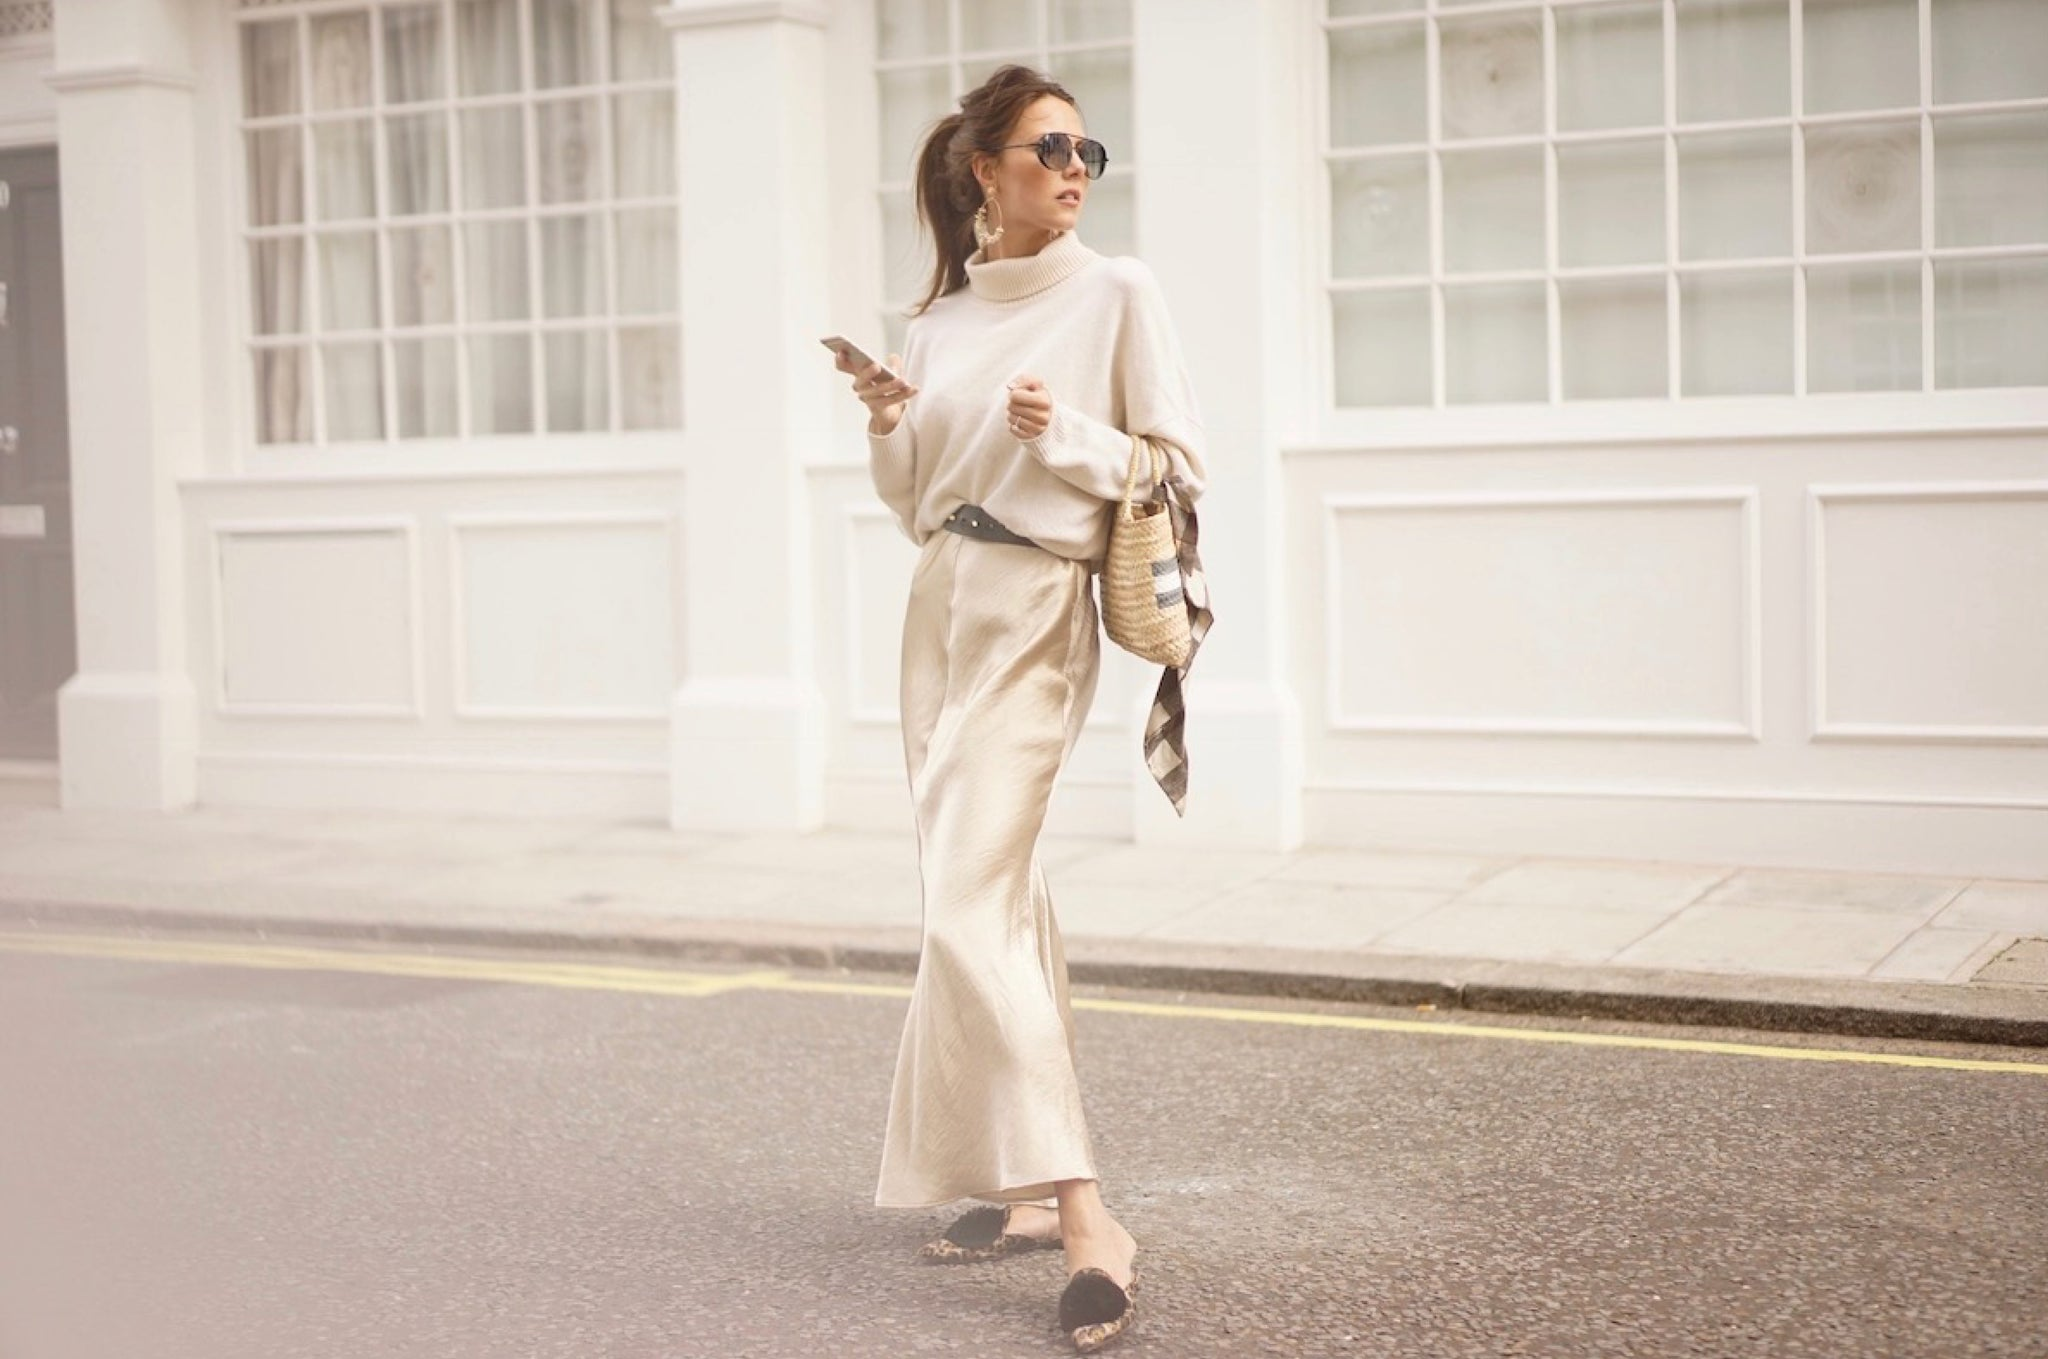 Stephanie Waxberg Dressed in a Beautiful Silk-Knit Combo